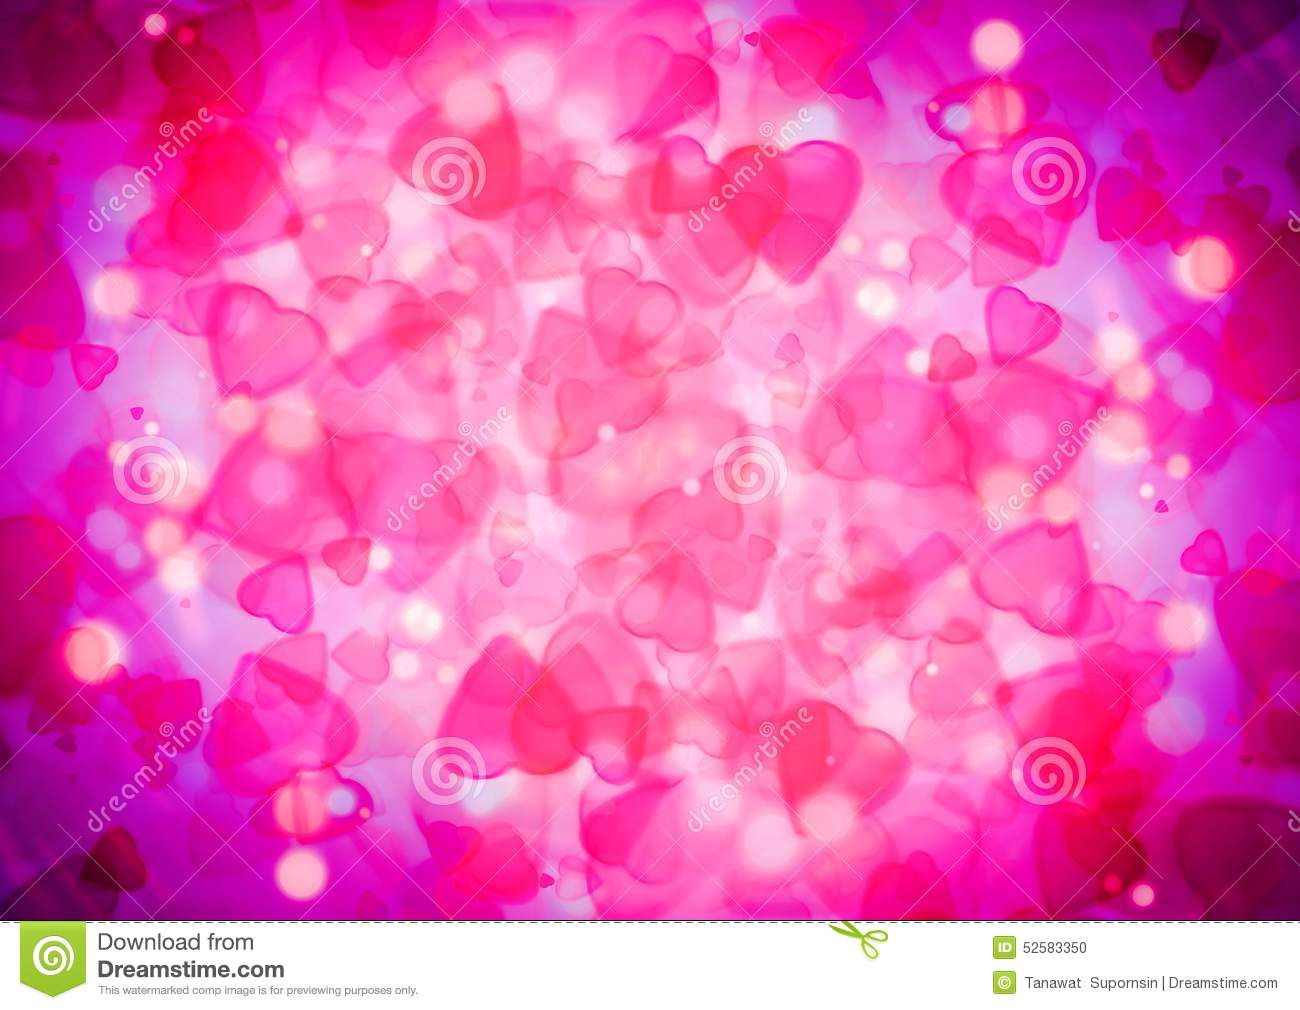 wallpapers purple hearts pink - photo #46